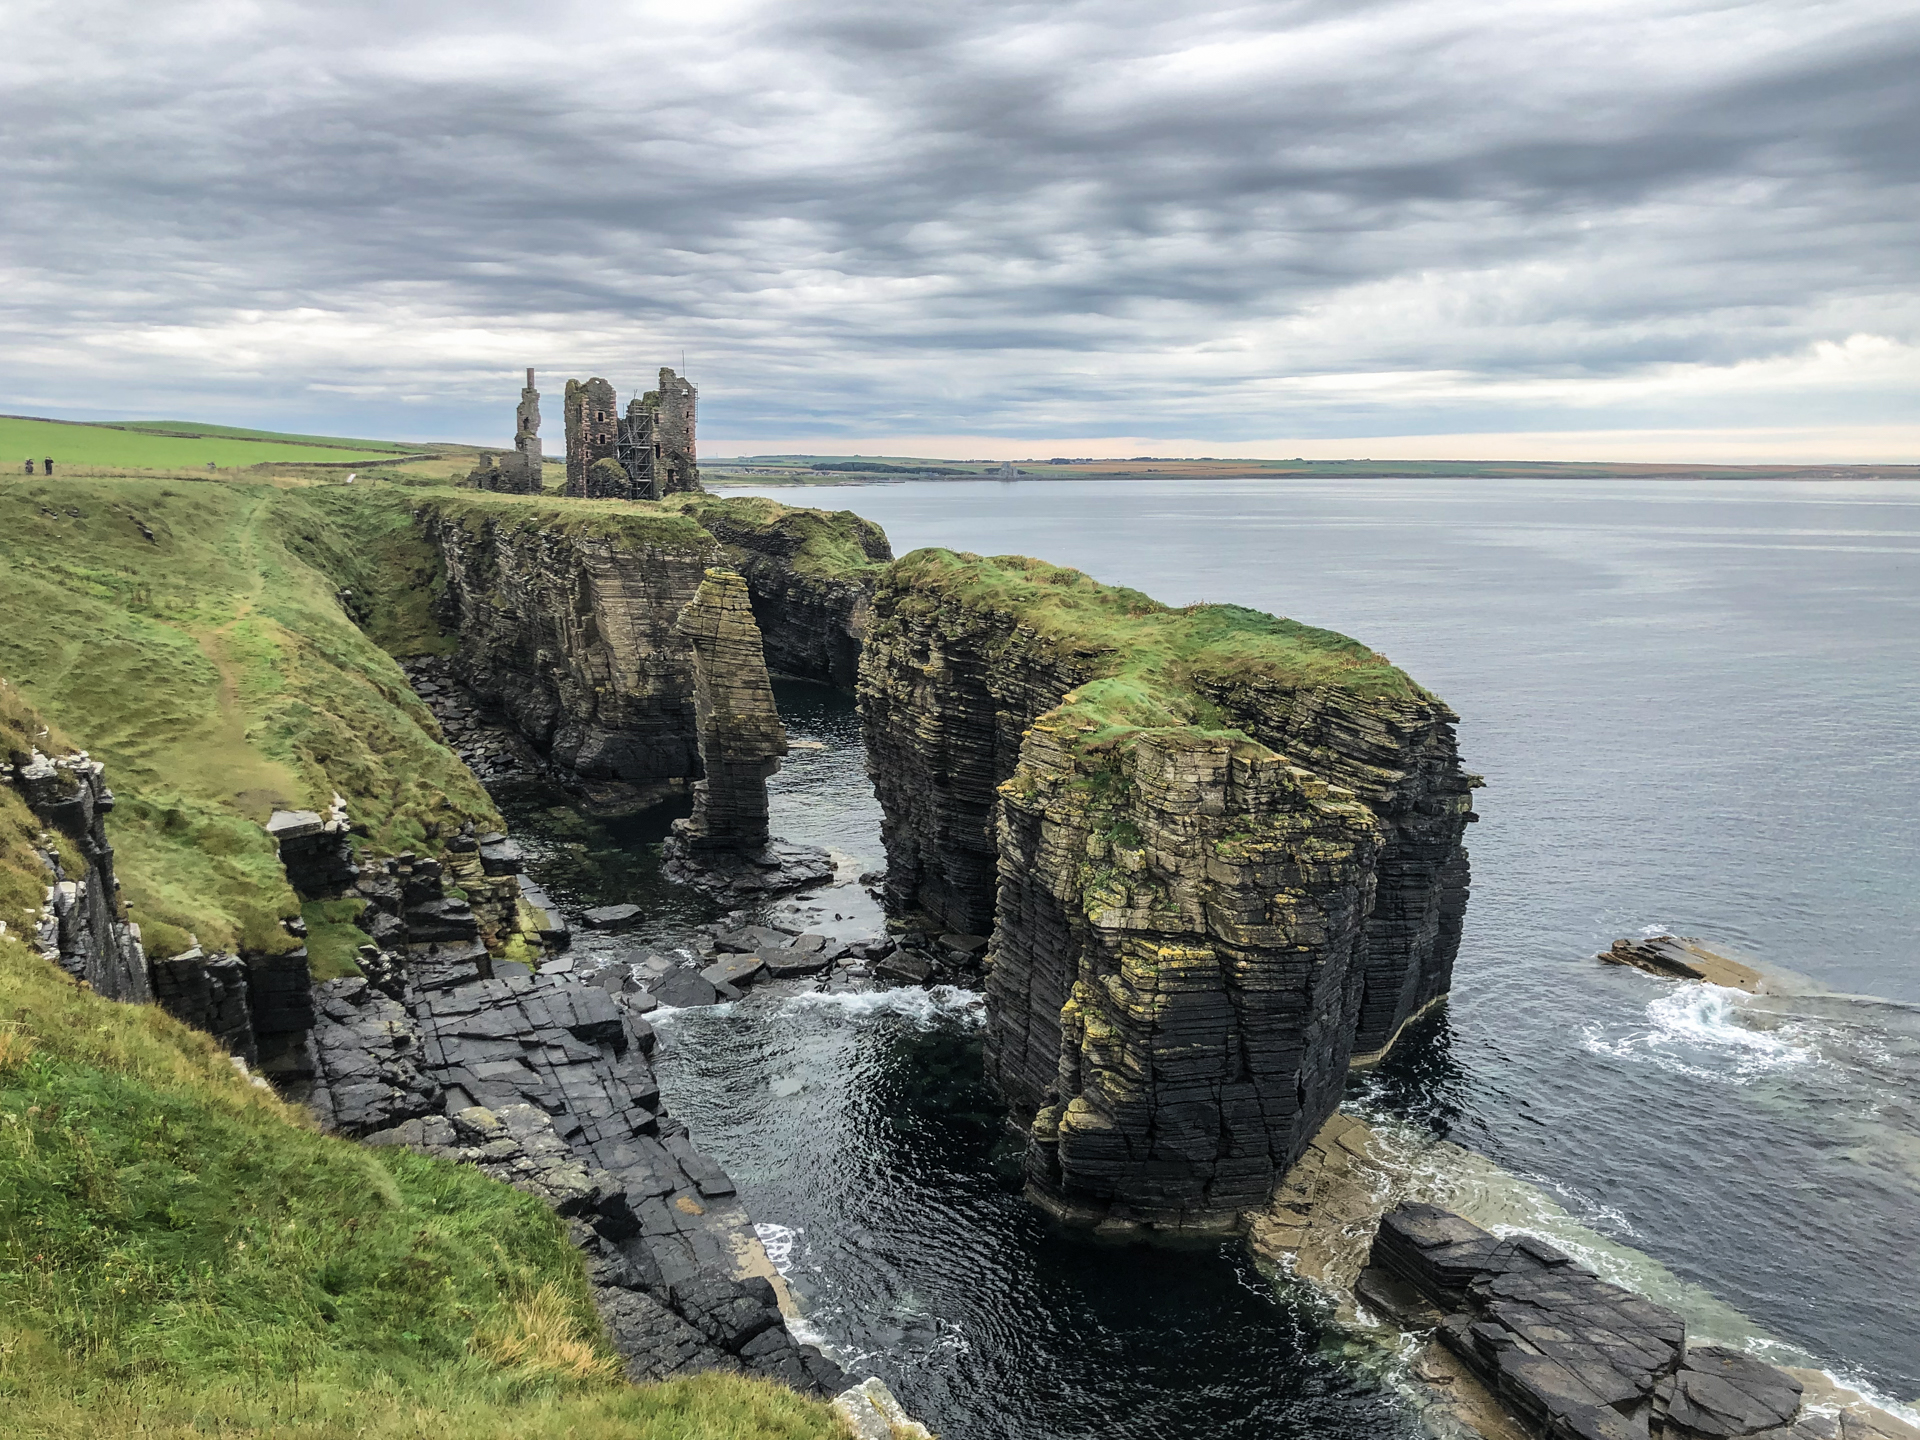 Image of a rocky shoreline and castle on the Scottish coast